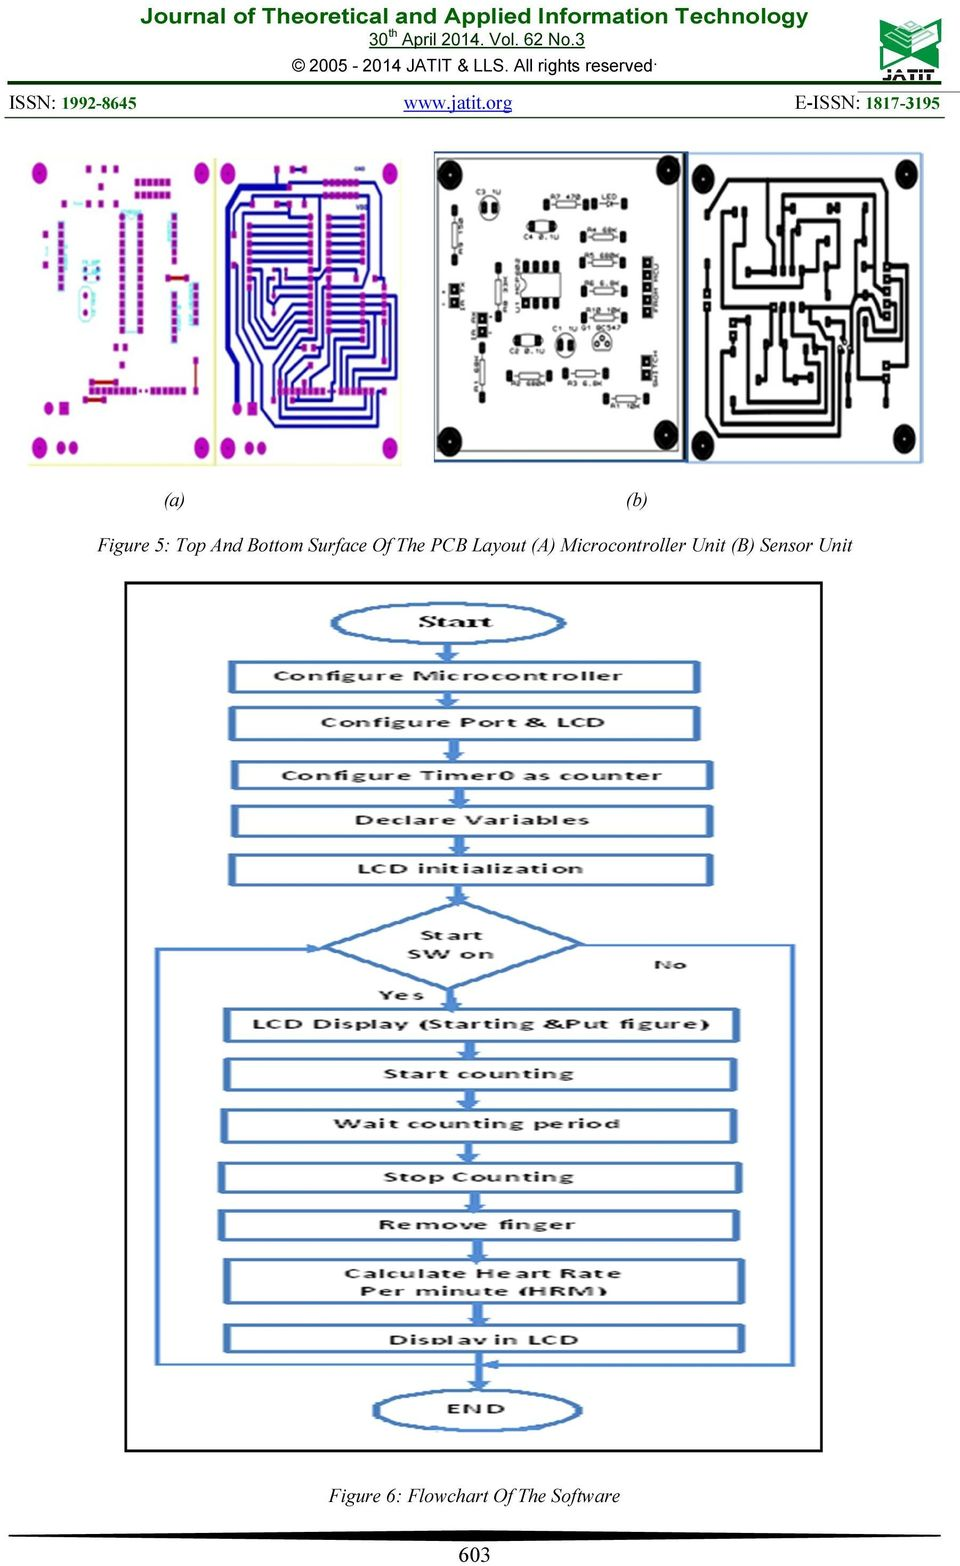 A Microcontroller Based Automatic Heart Rate Counting System From Ac Fan Speed Control Using Android Mobile Microtronics Technologies Unit B Sensor